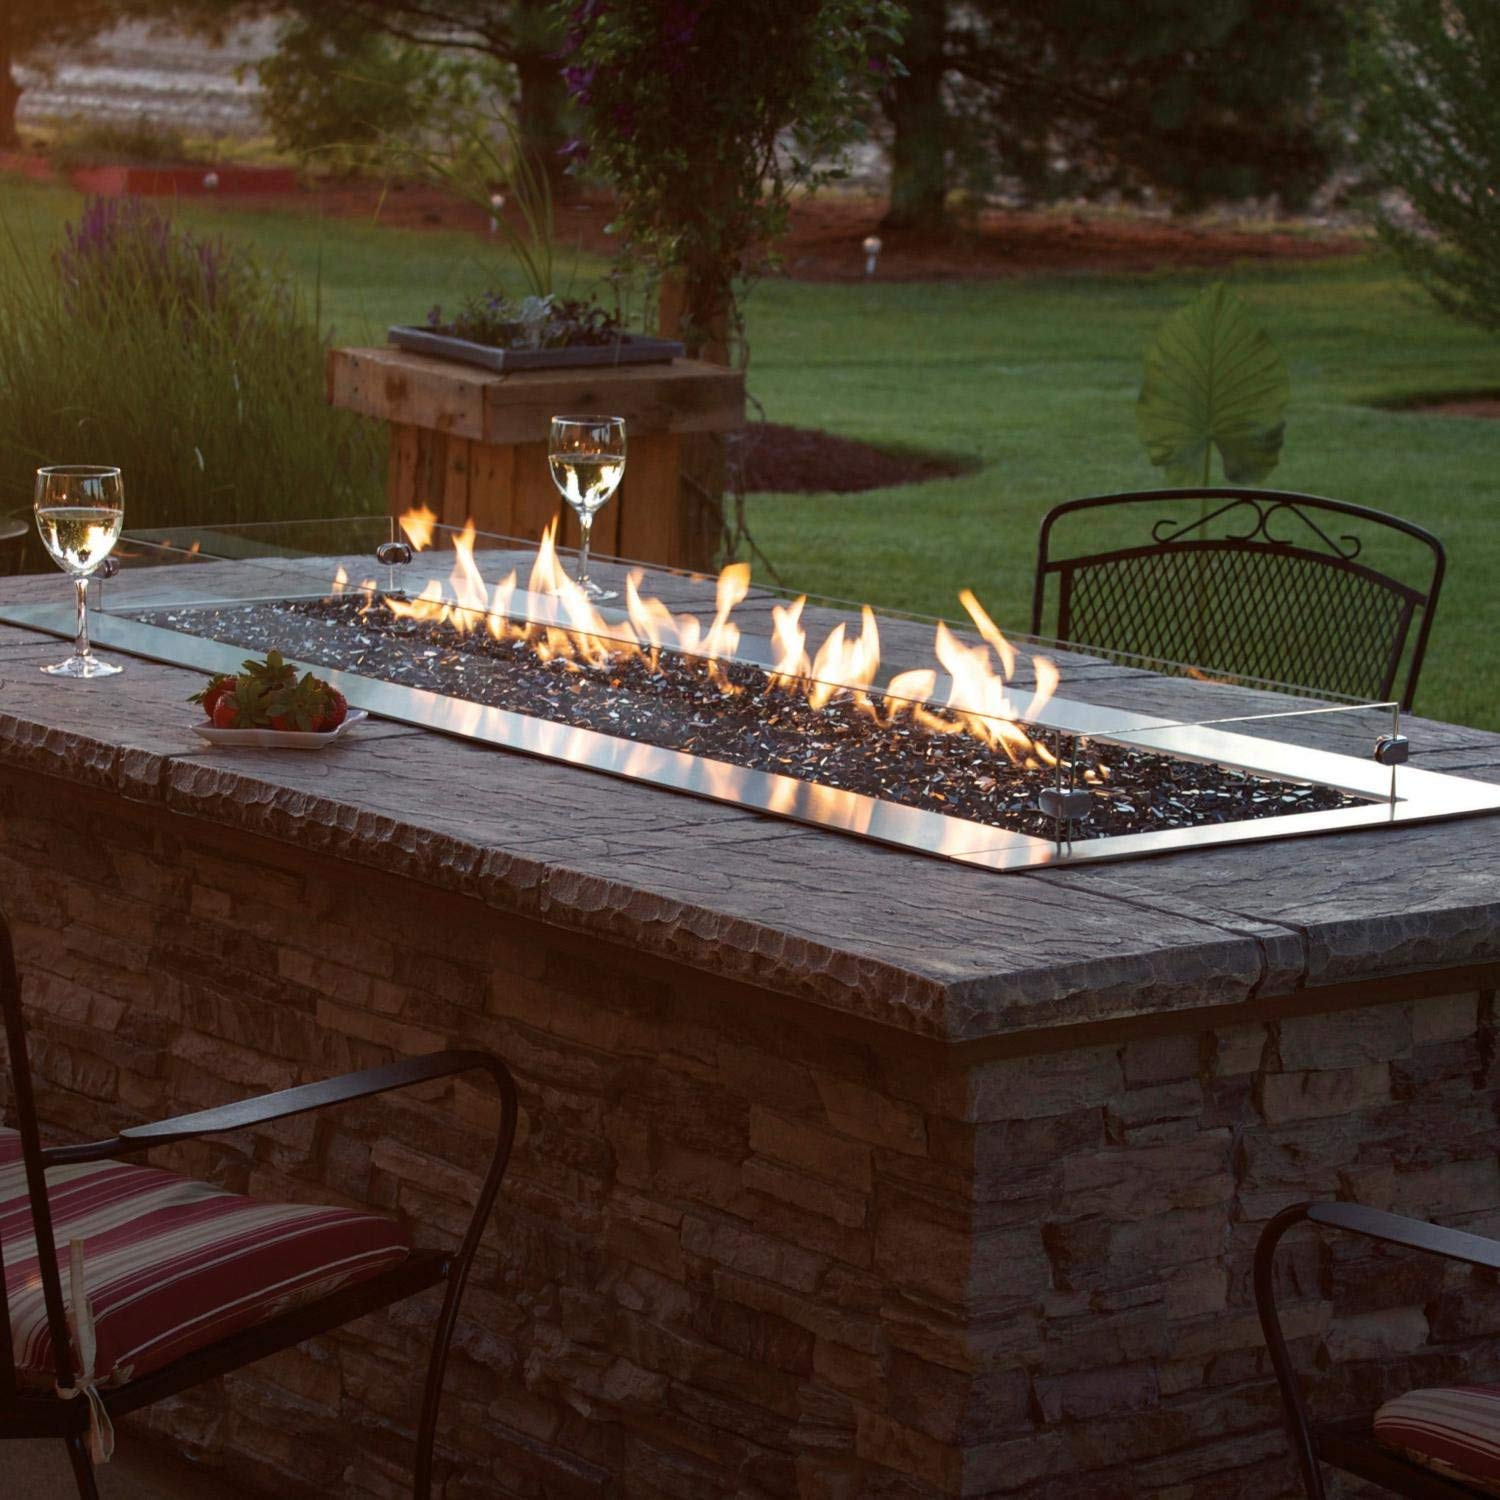 Cheap Propane Fire Pit Parts Find Propane Fire Pit Parts Deals On